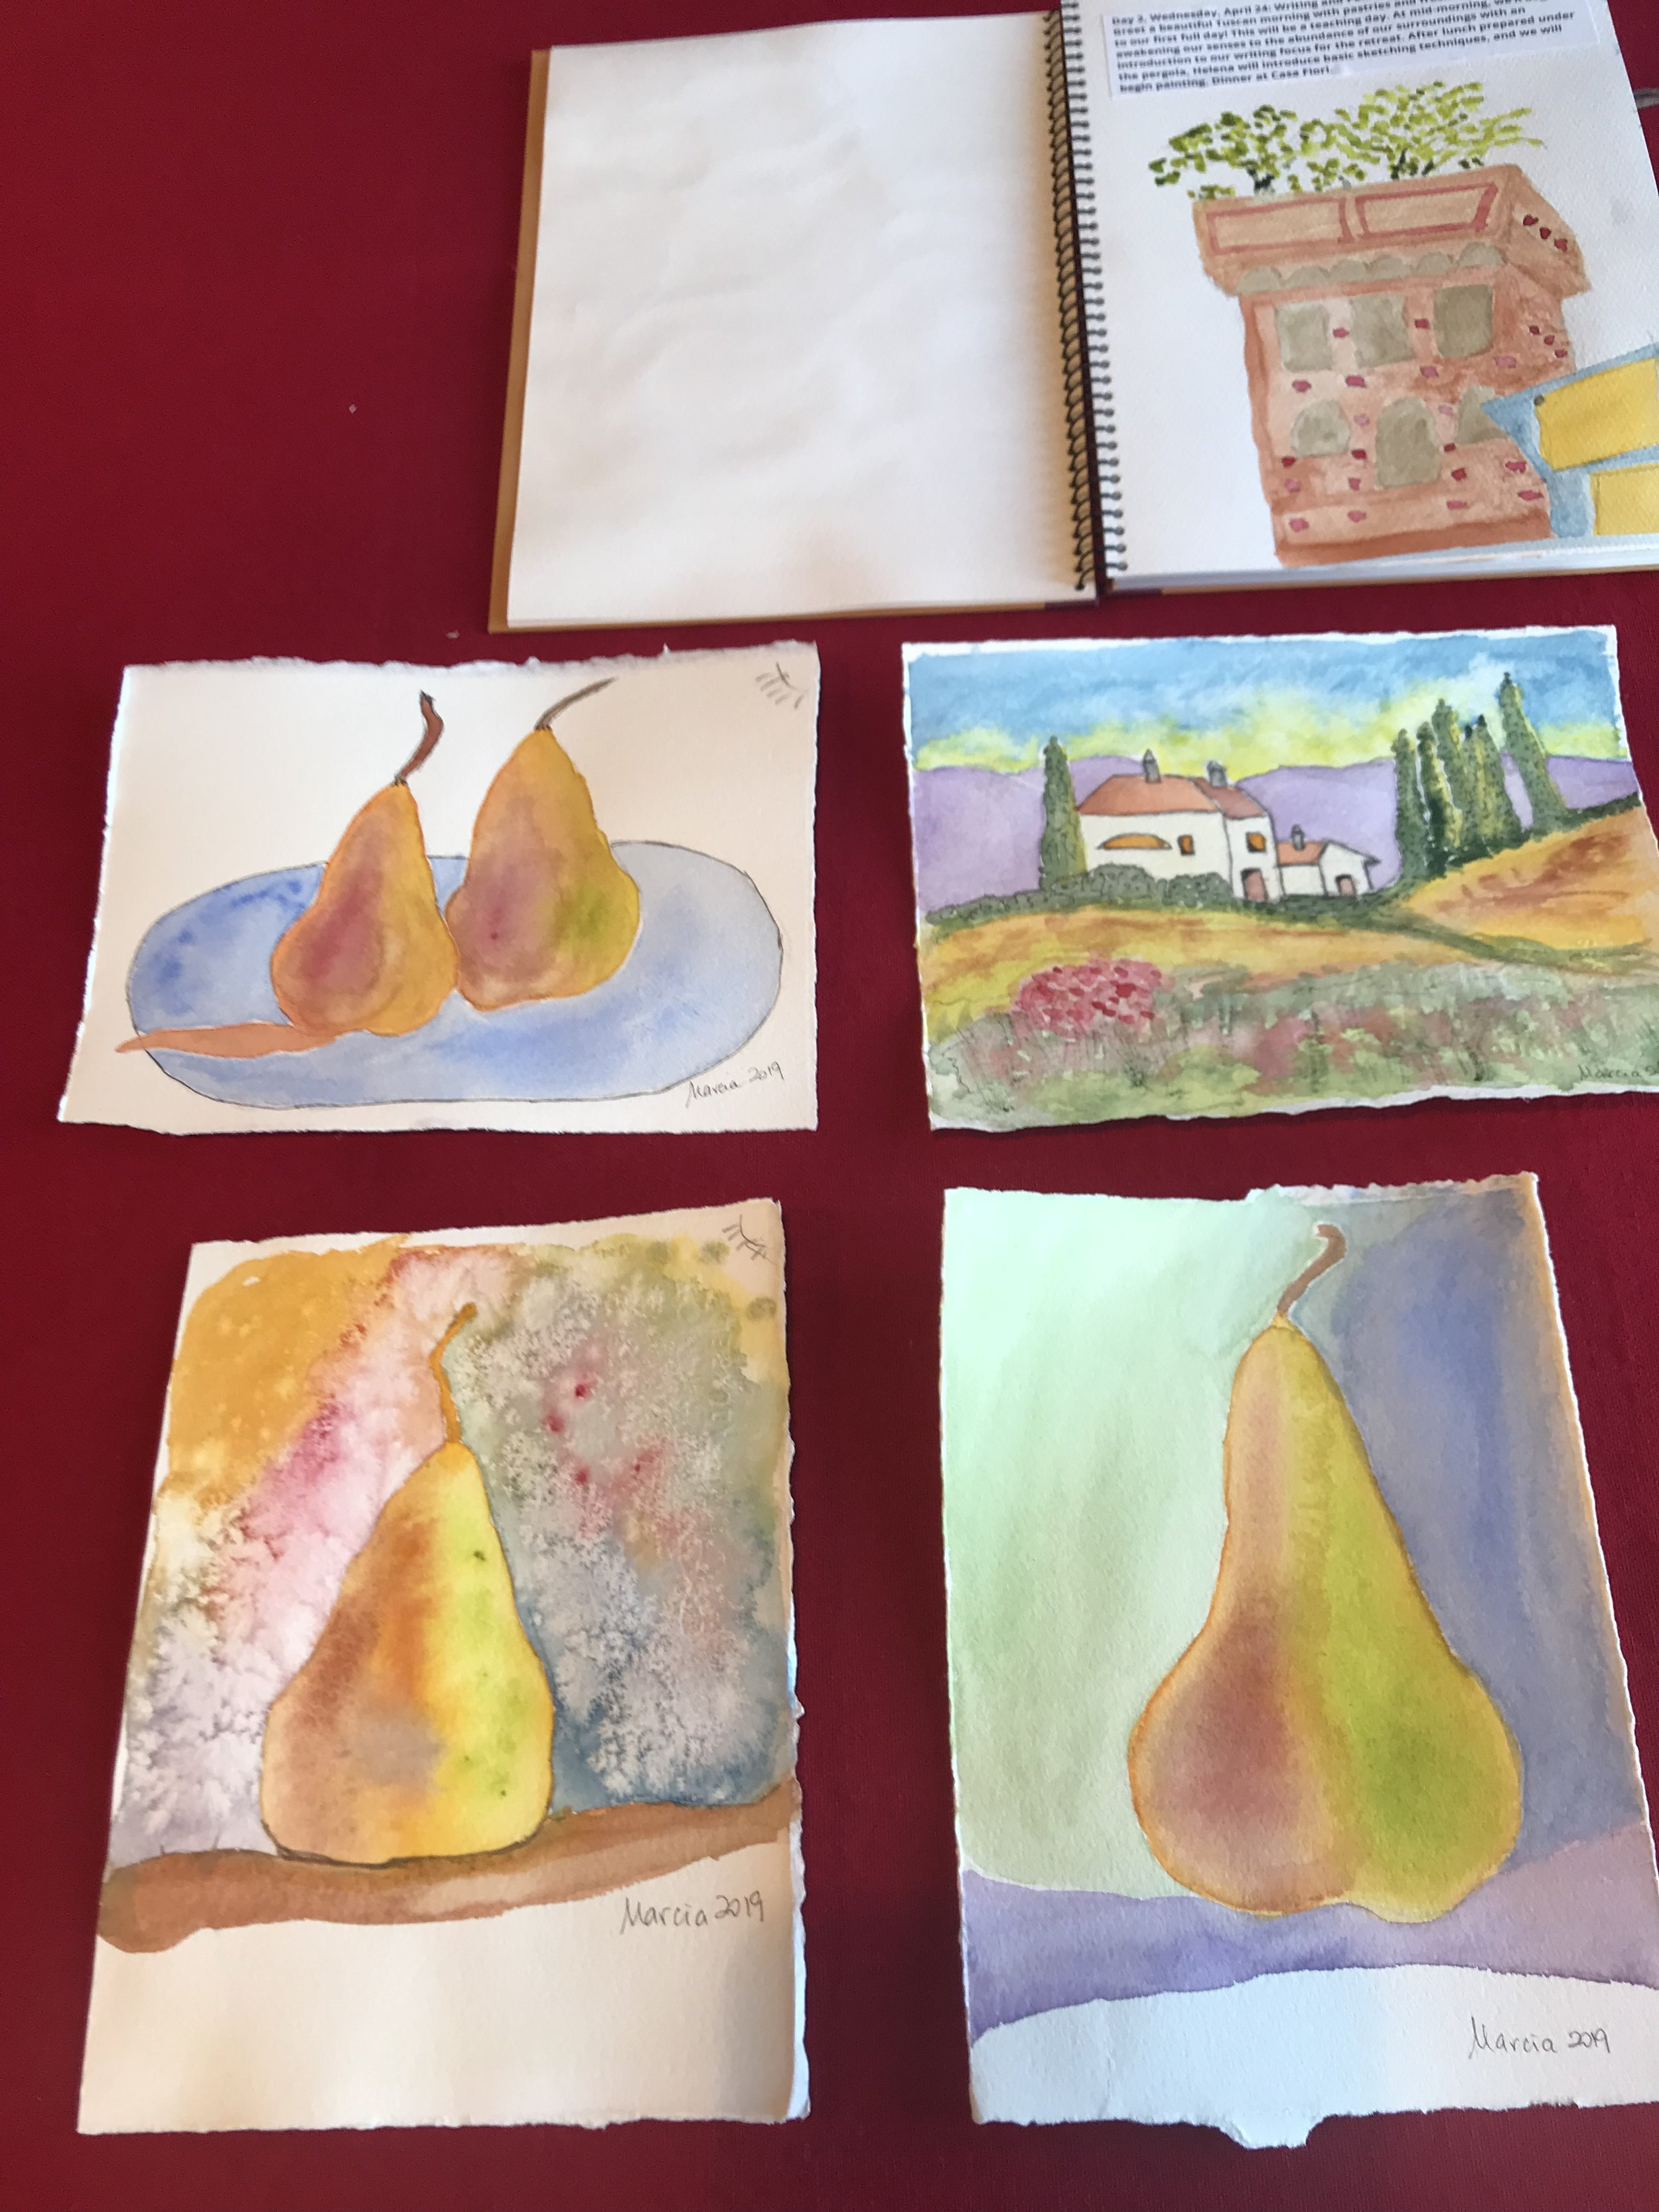 My first watercolors, with thanks to the excellent teaching of my colleague-in-crime Helena Hill. (Remember the tree tower in Lucca?).